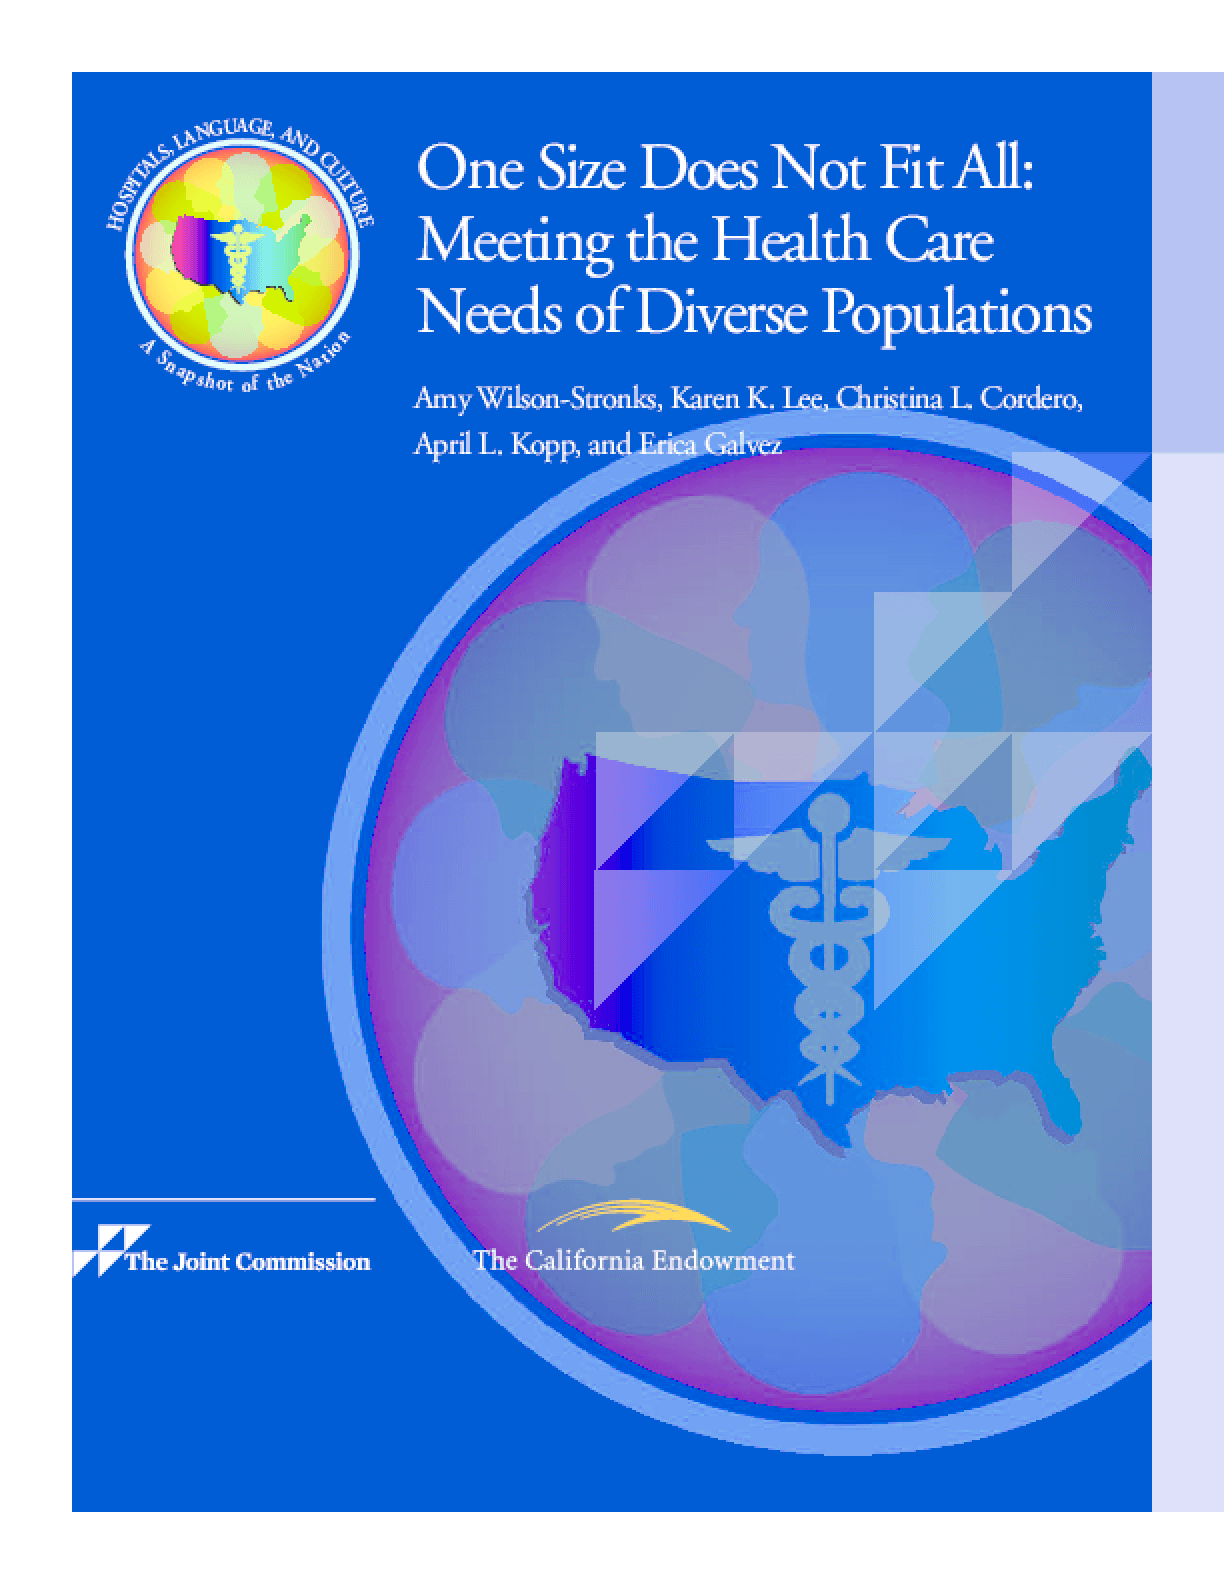 One Size Does Not Fit All: Meeting the Health Care Needs of Diverse Populations